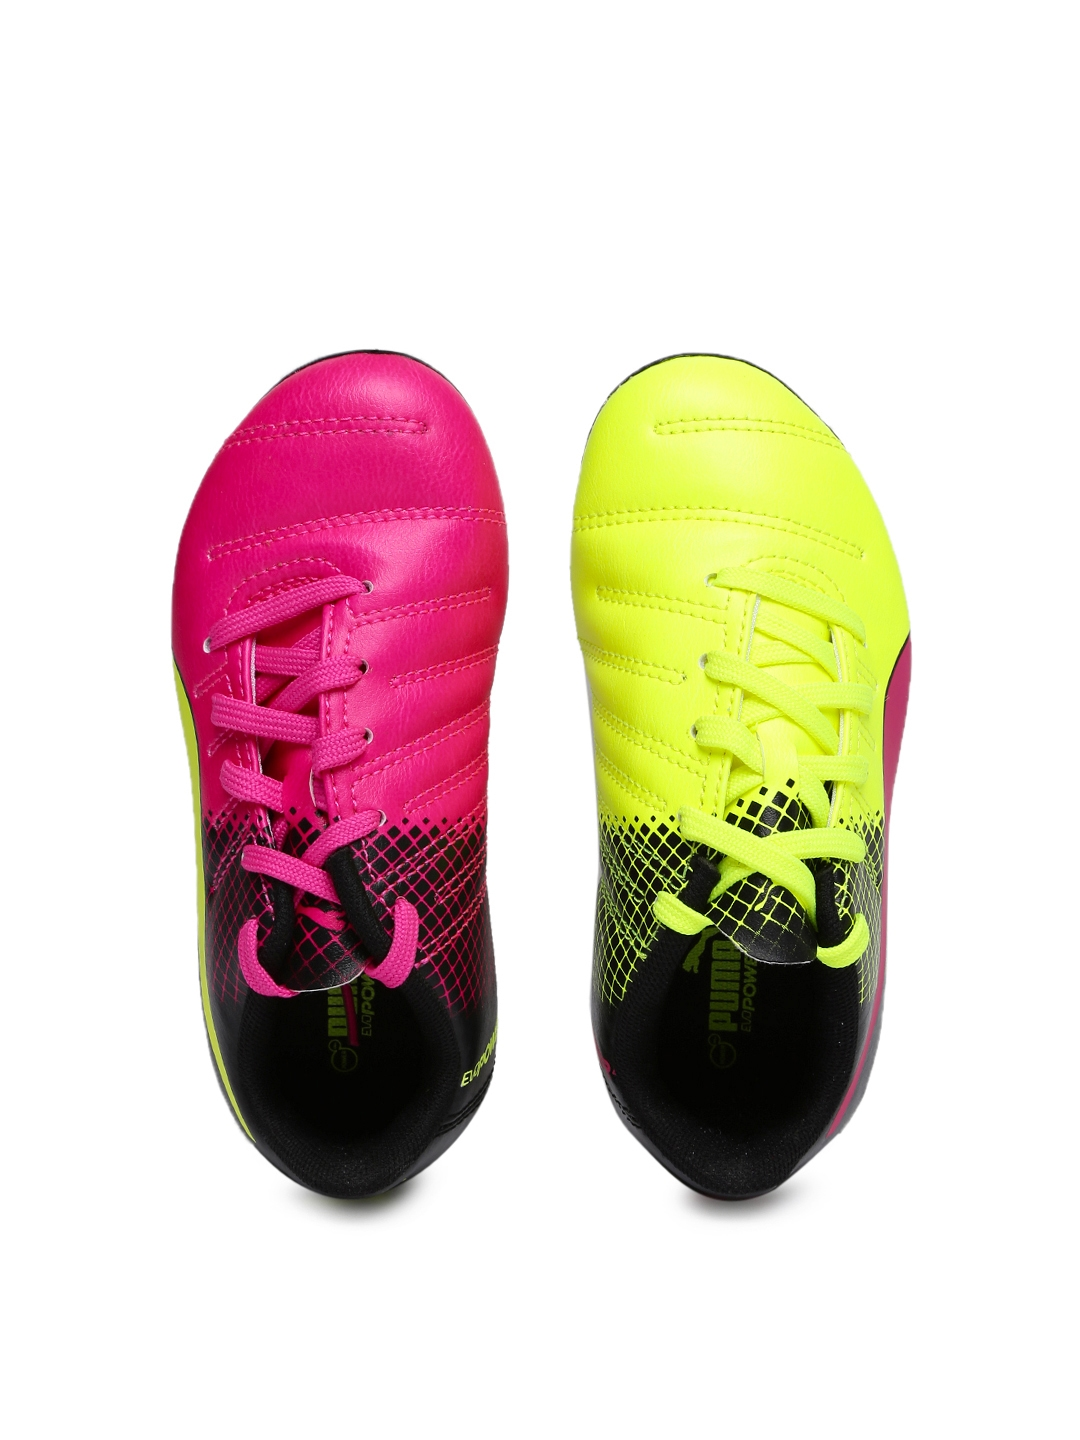 Puma Unisex Pink   Fluorescent Green evoPOWER 4.3 FG Jr Football Shoes